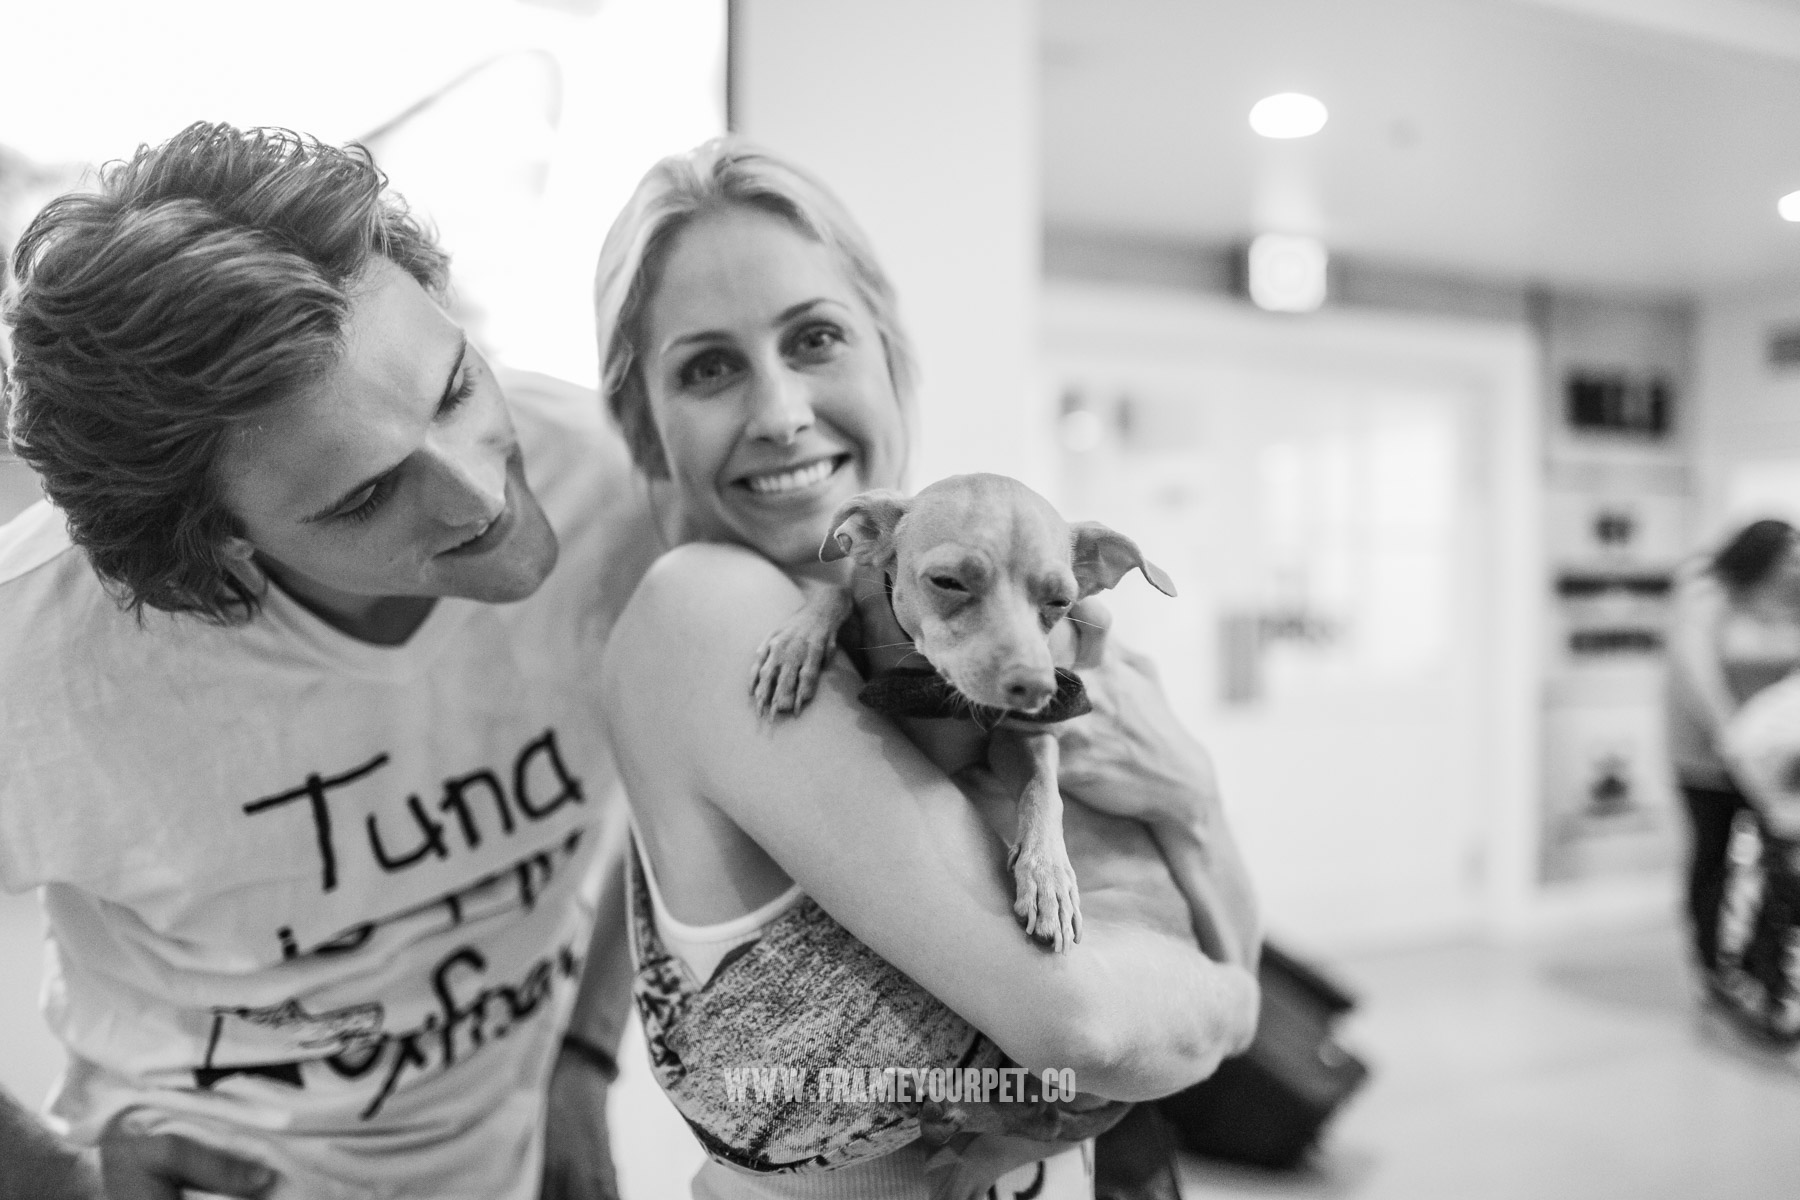 tuna-the-dog-NKLA-frame-your-pet-18.jpg